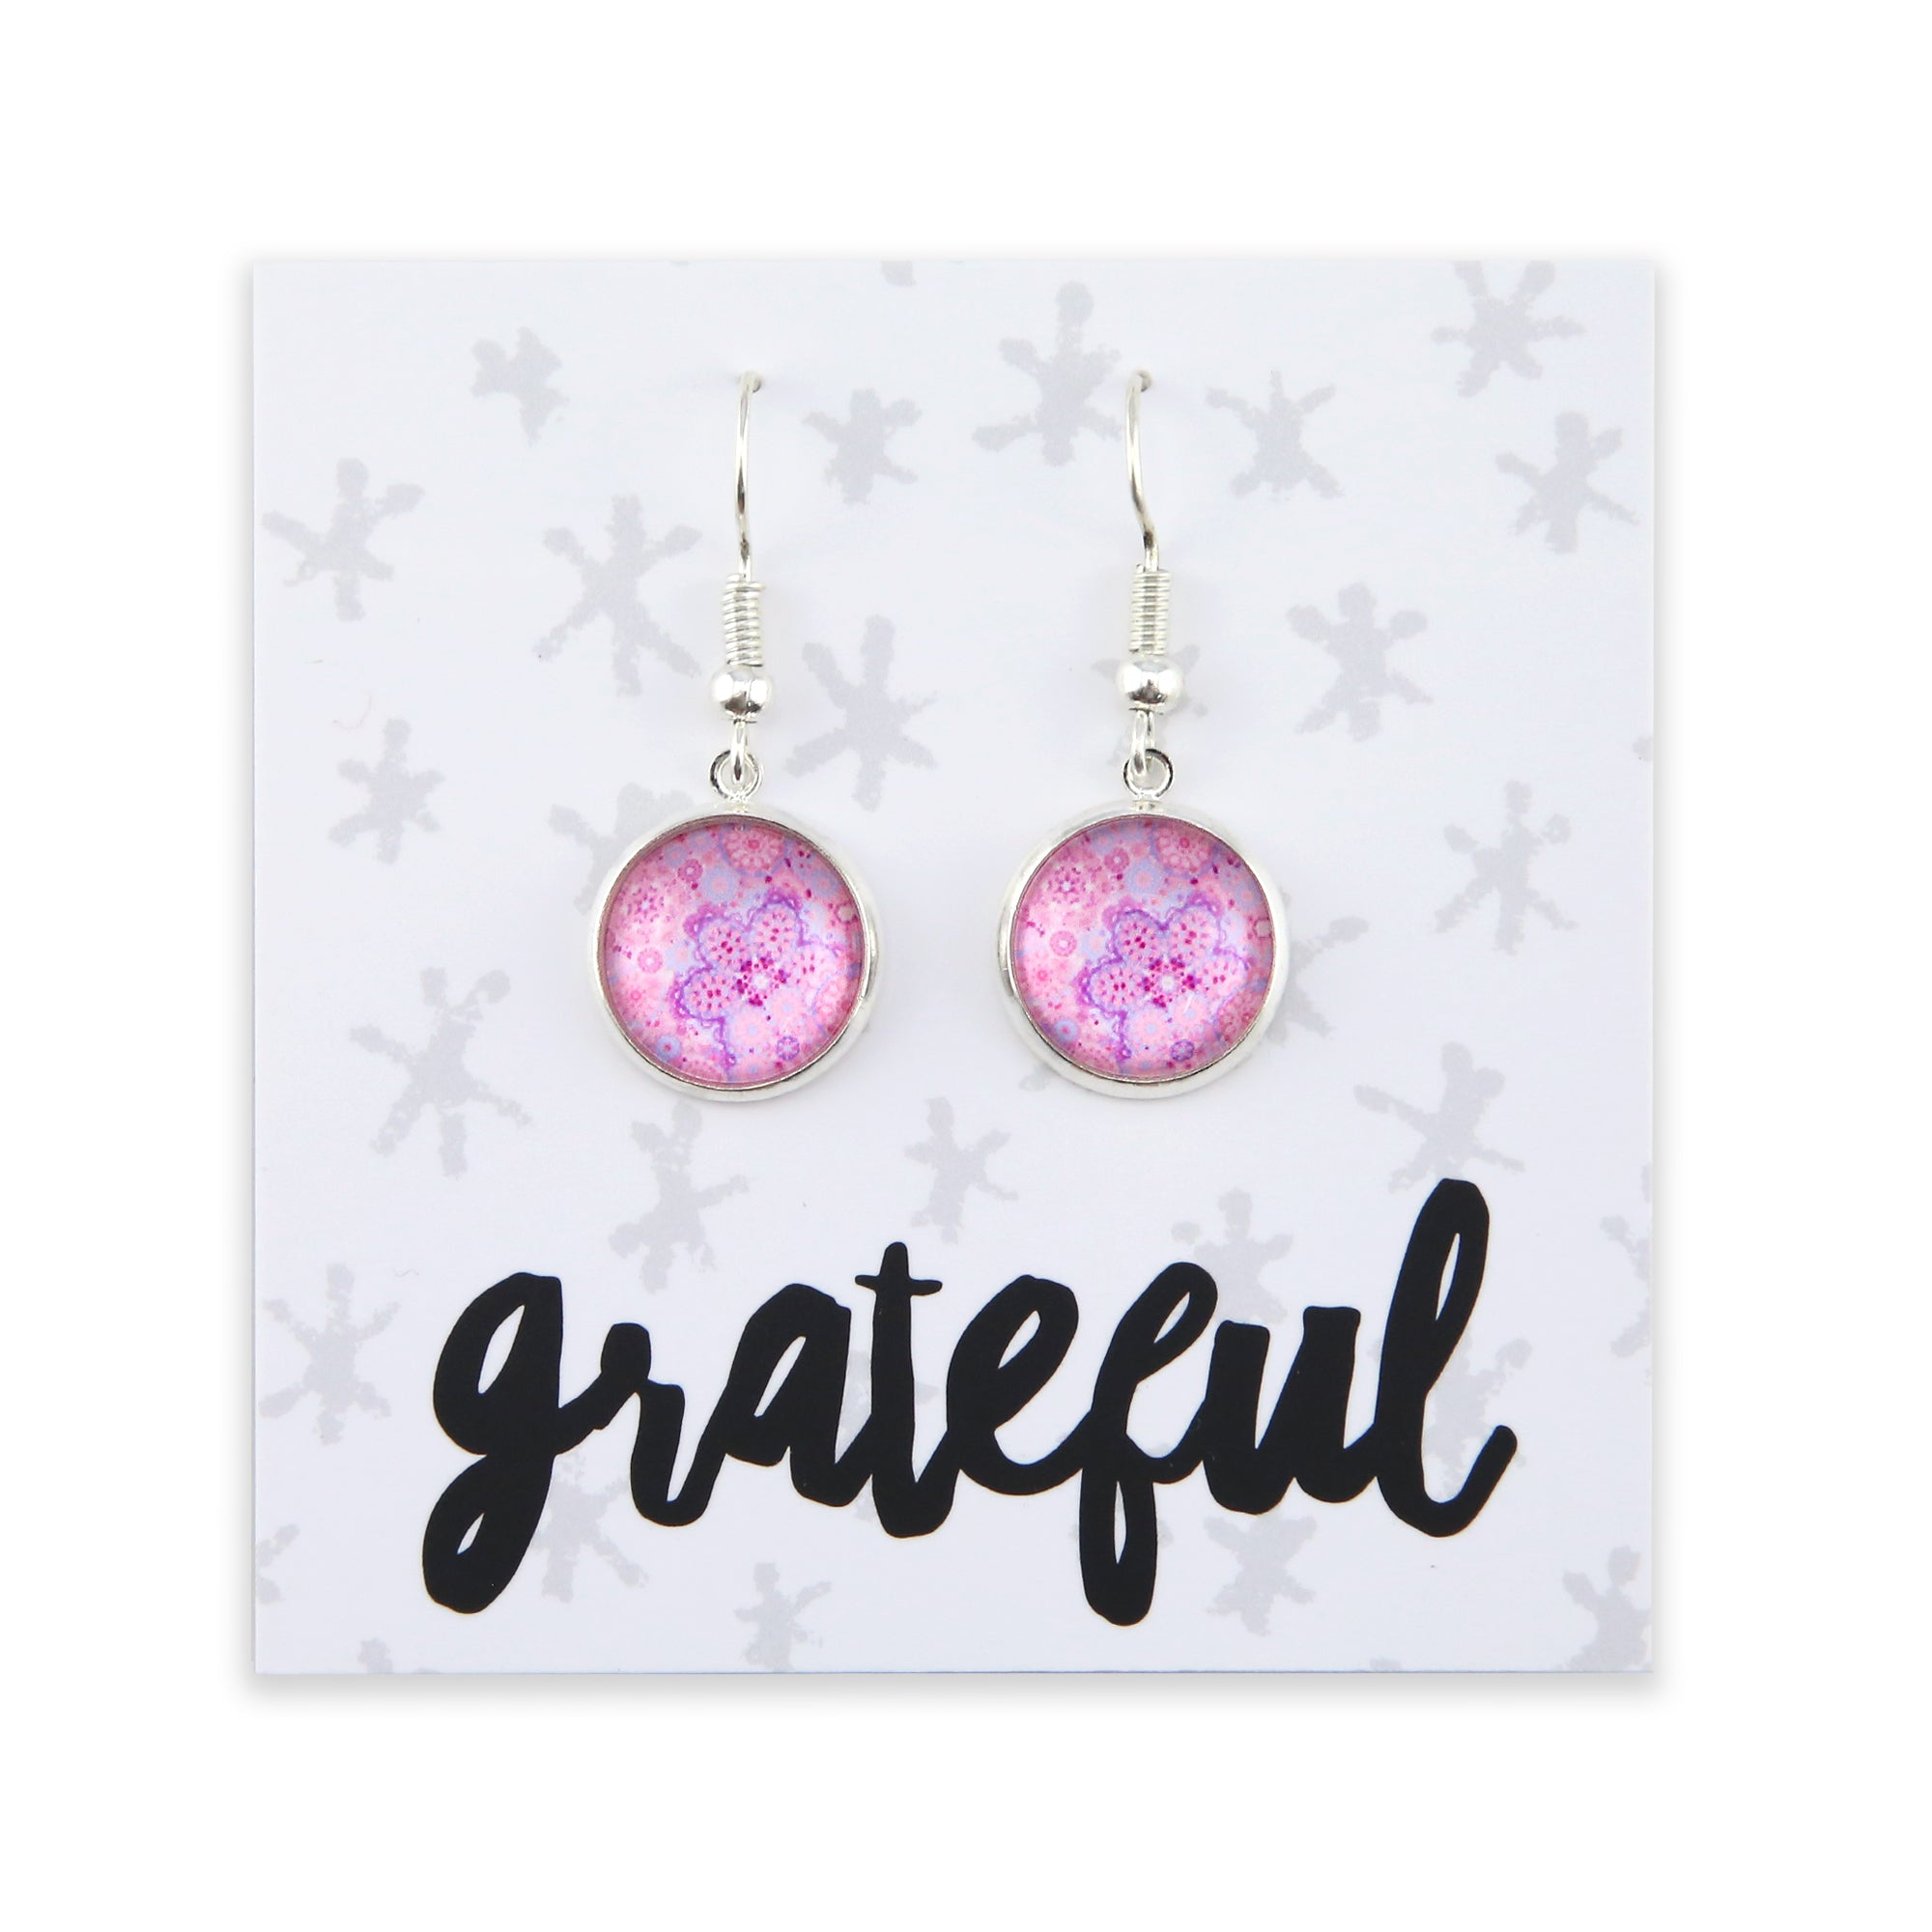 Pink Collection - Grateful - Stainless Steel Bright Silver Dangle Earrings - Pink Ice (2207)